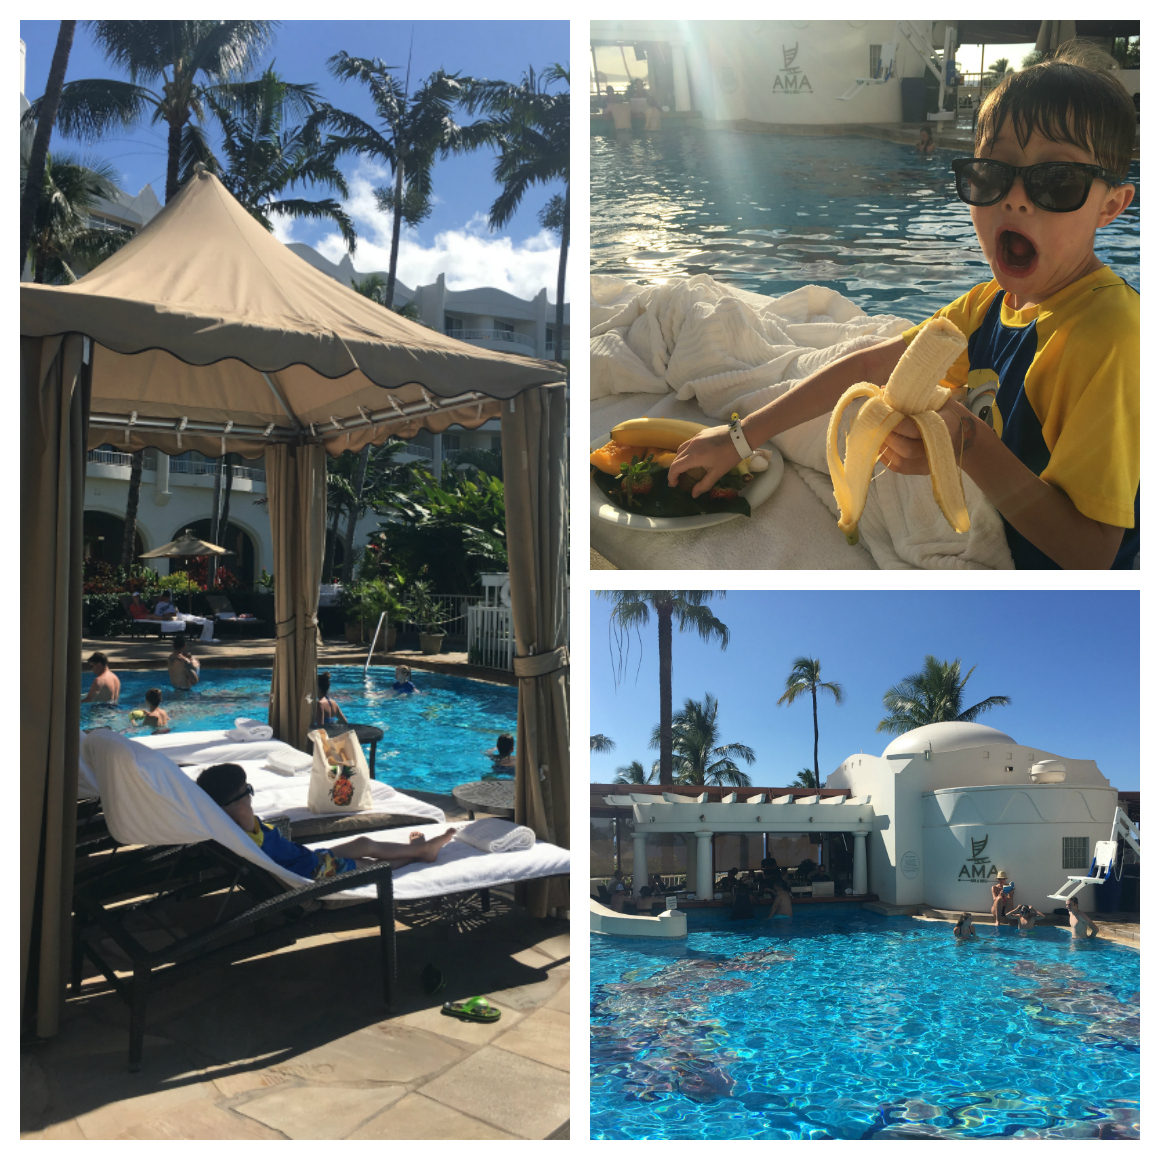 Best Maui hotel for families - Well Traveled Kids